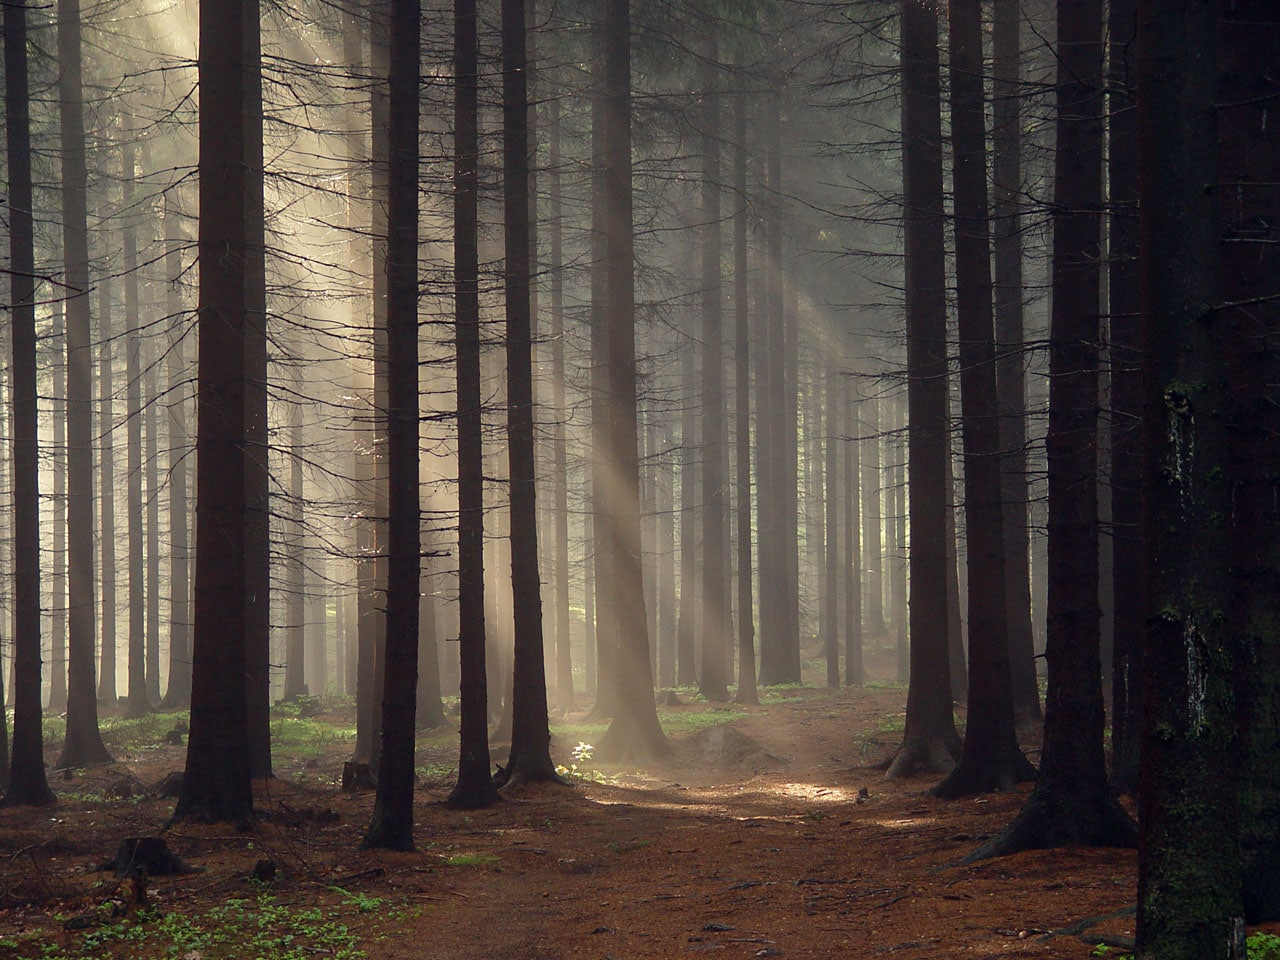 Cool desktop background, forest images